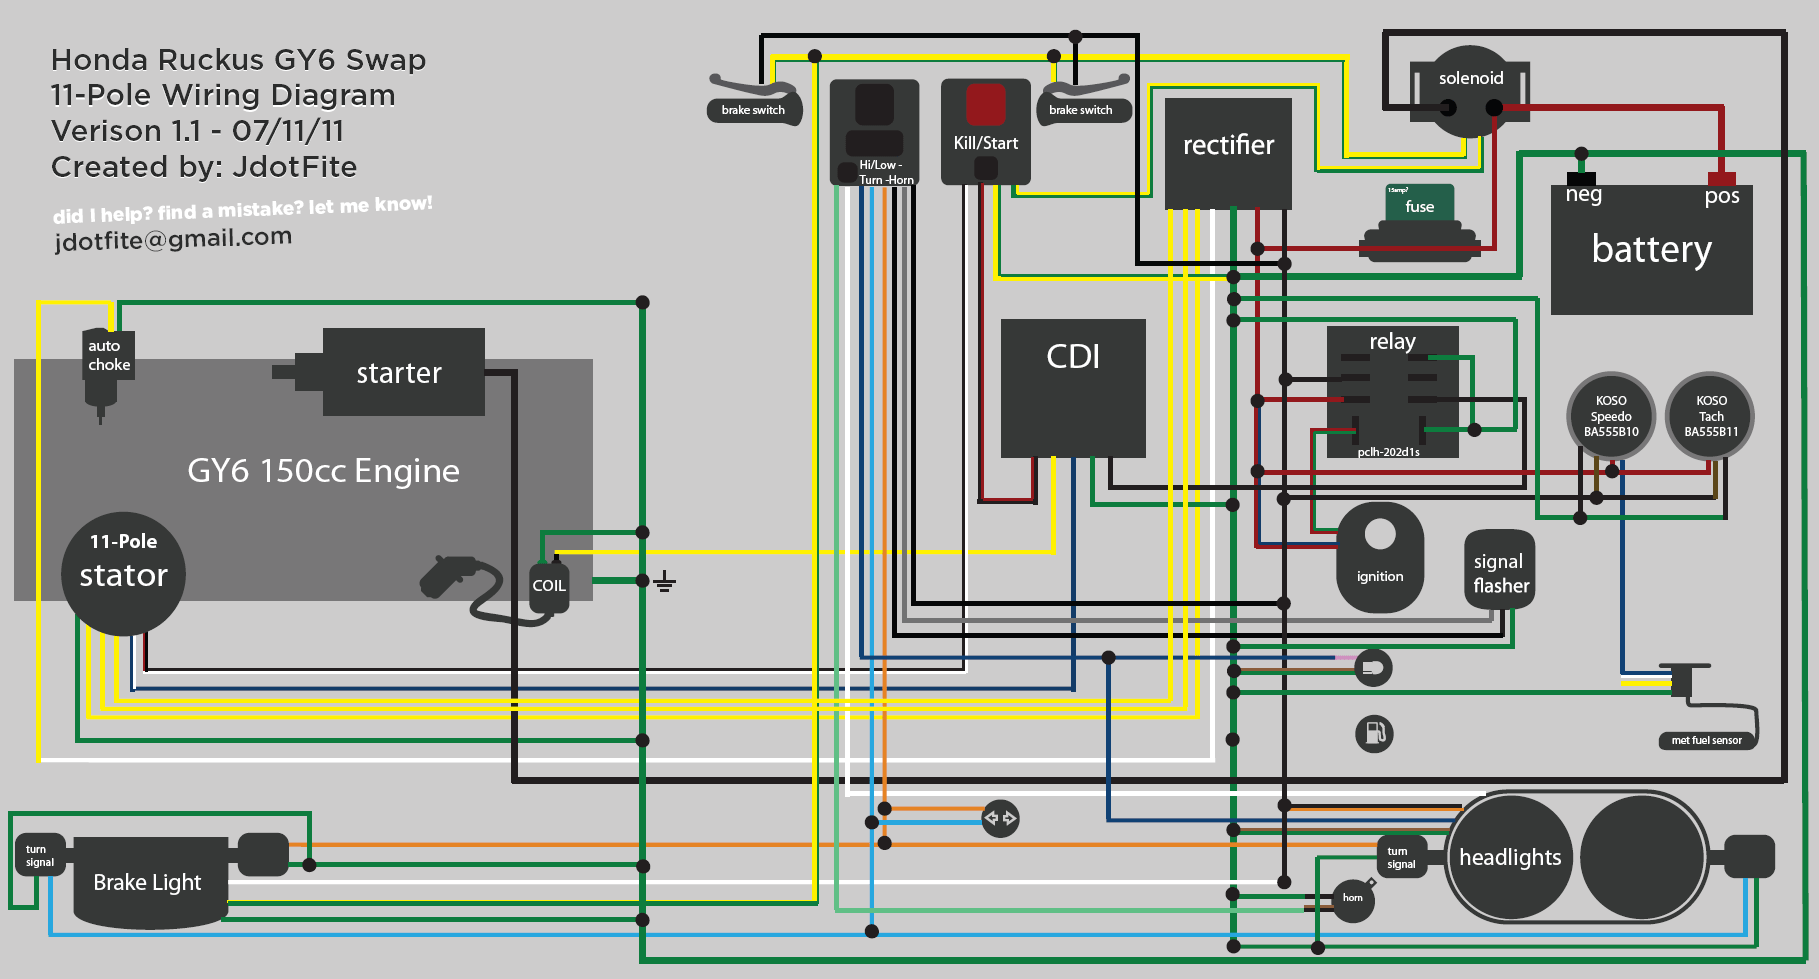 7 wire trailer harness schematic h images harness diagram besides wiring diagram honda ruckus documentation furthermore wire harness